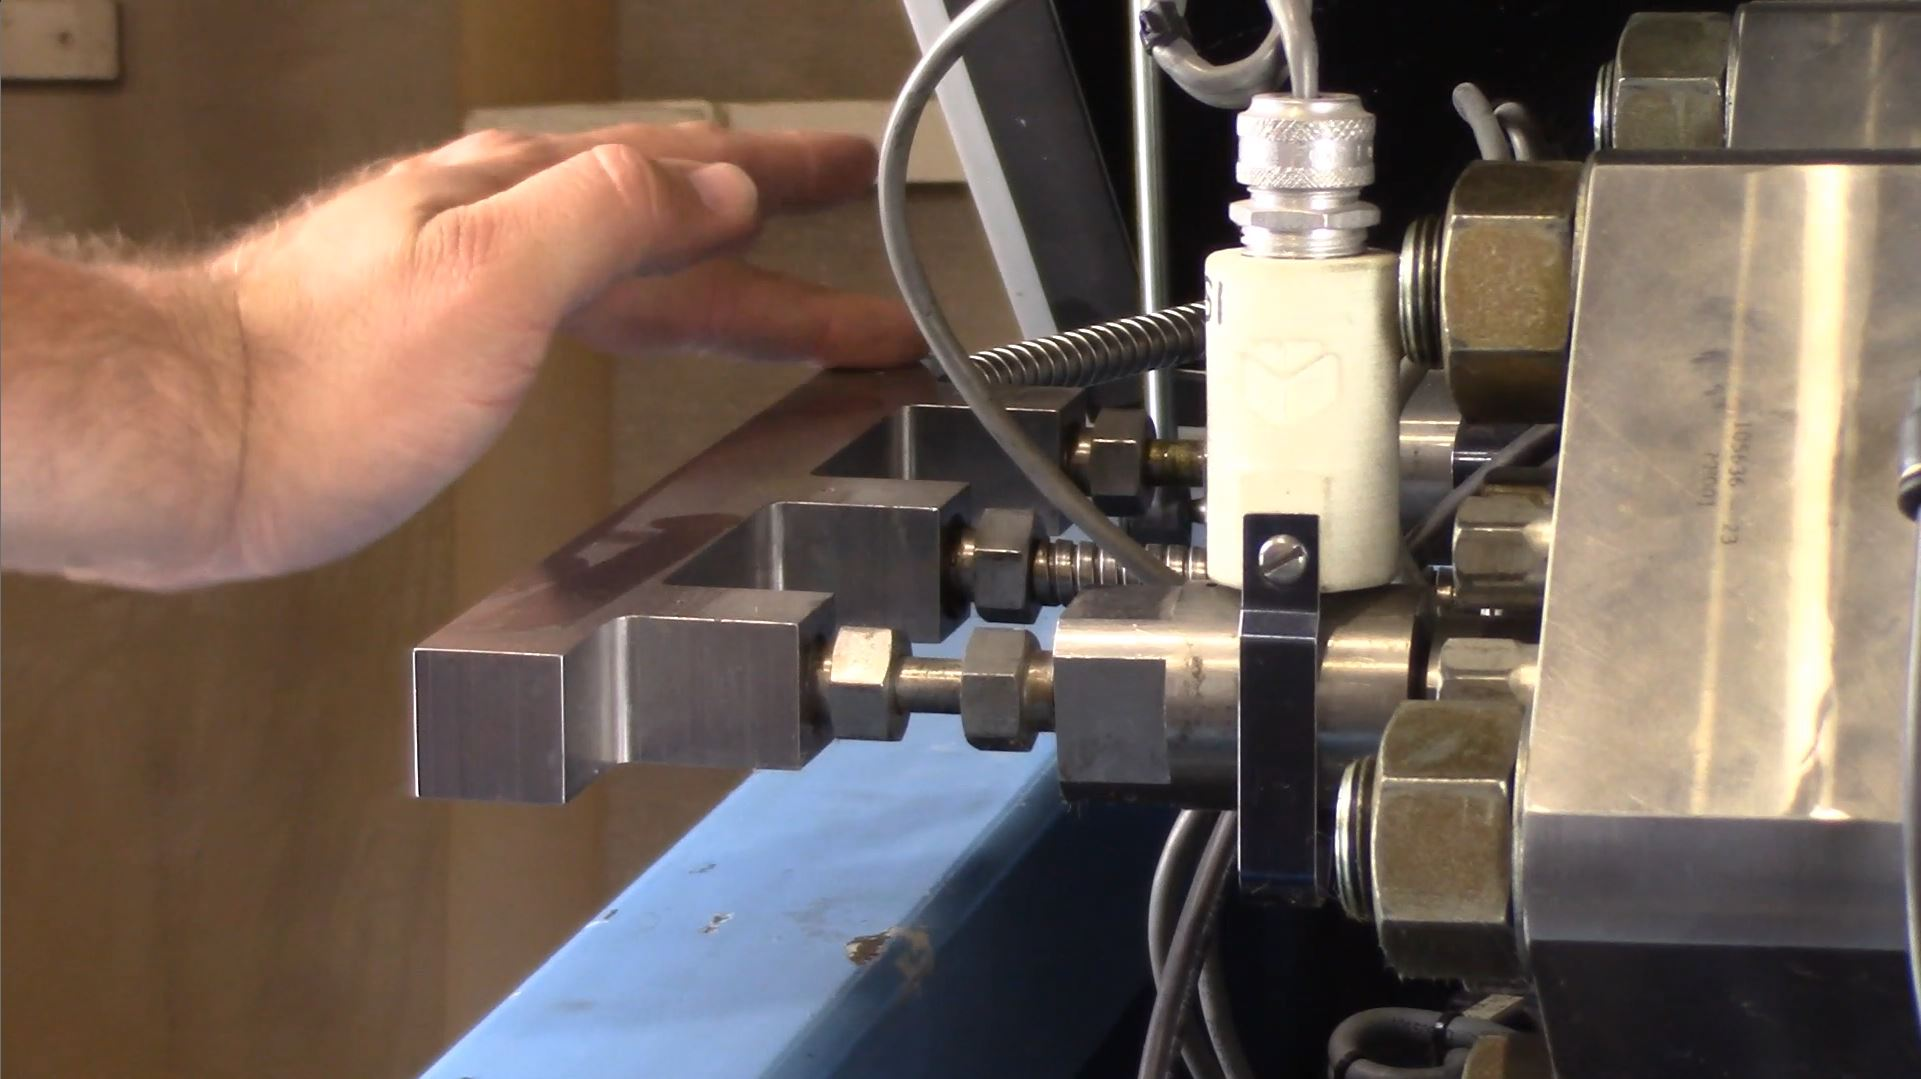 Water Jet Pump Maintenance Series – Part 4: Flushing the High-Pressure (HP) Water System